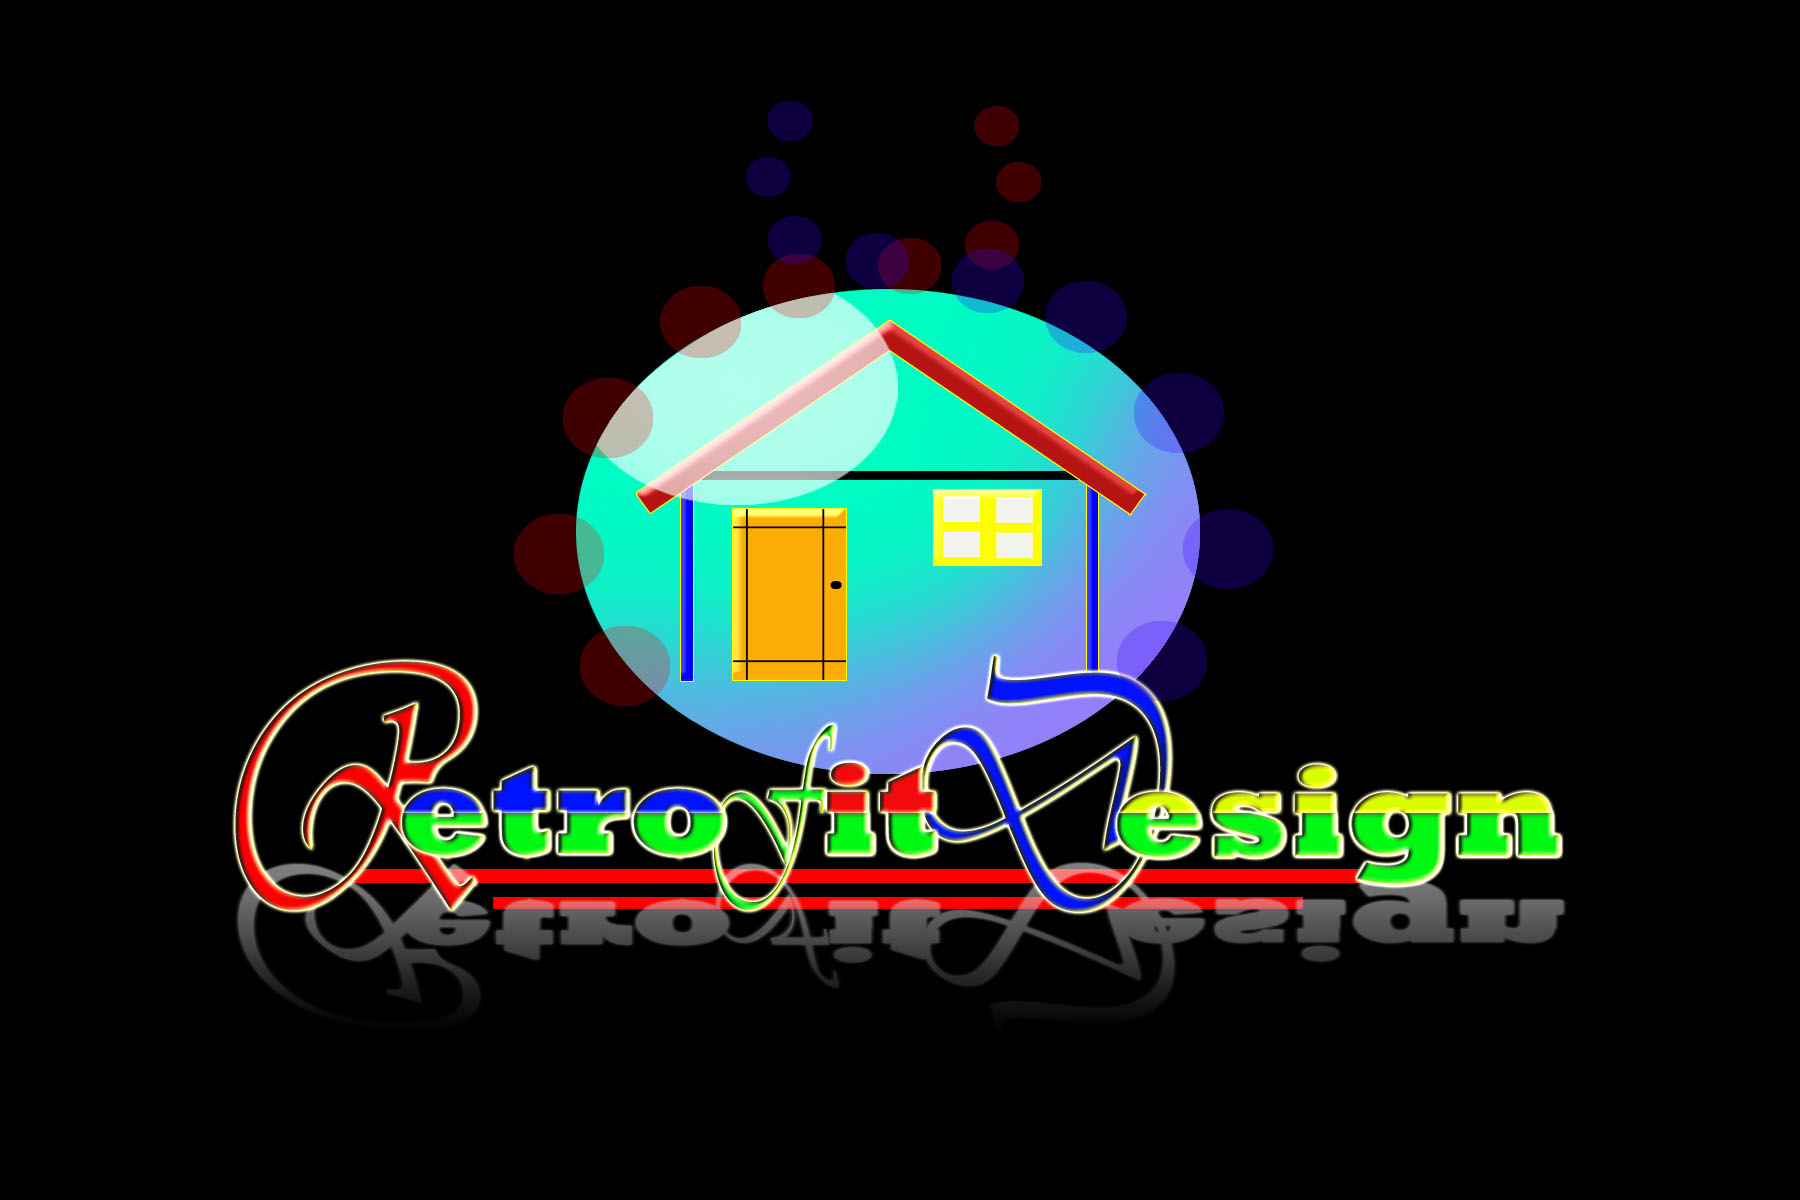 Logo Design by DHjinnx Ocampo - Entry No. 90 in the Logo Design Contest Inspiring Logo Design for retrofit design.